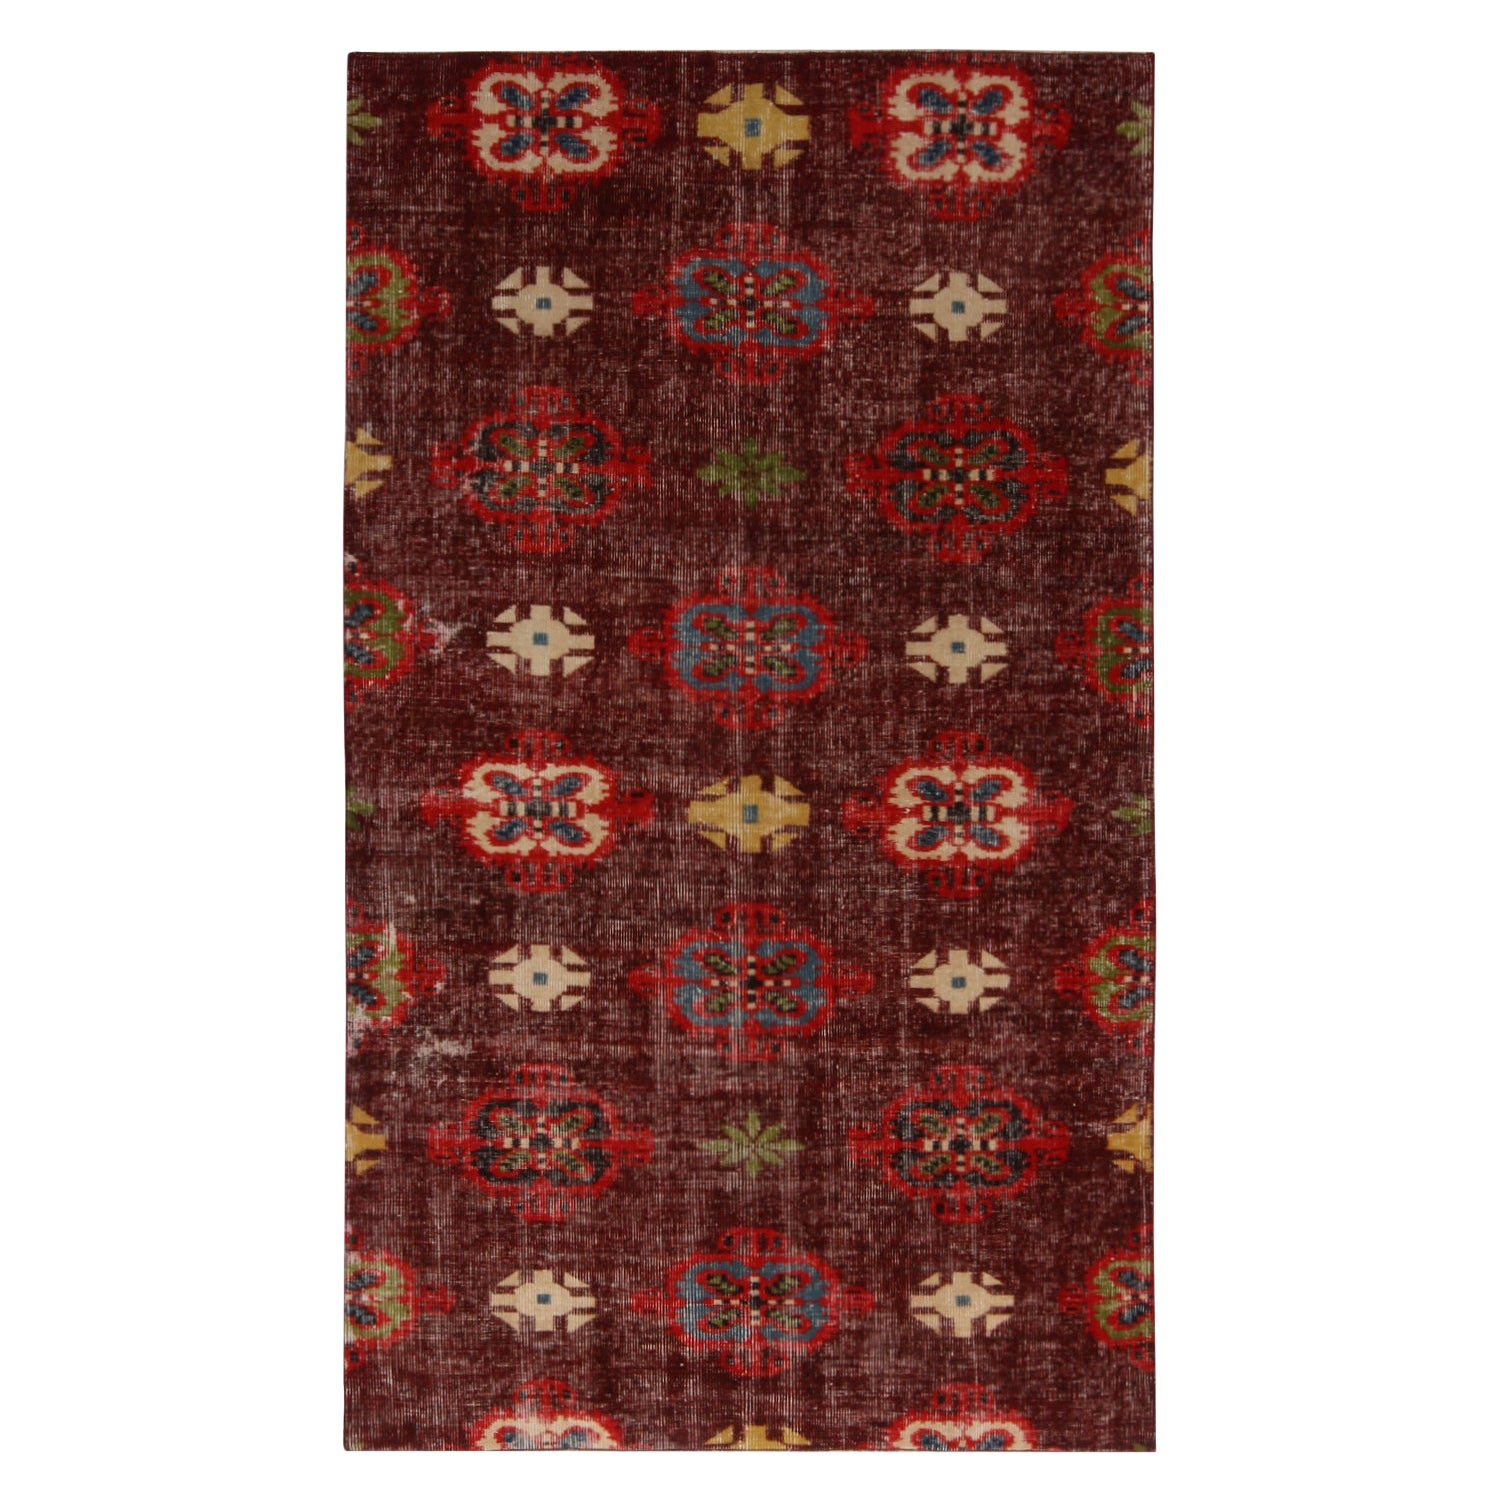 Vintage Midcentury Purple and Red Geometric Wool Rug with Multi-Color Accents